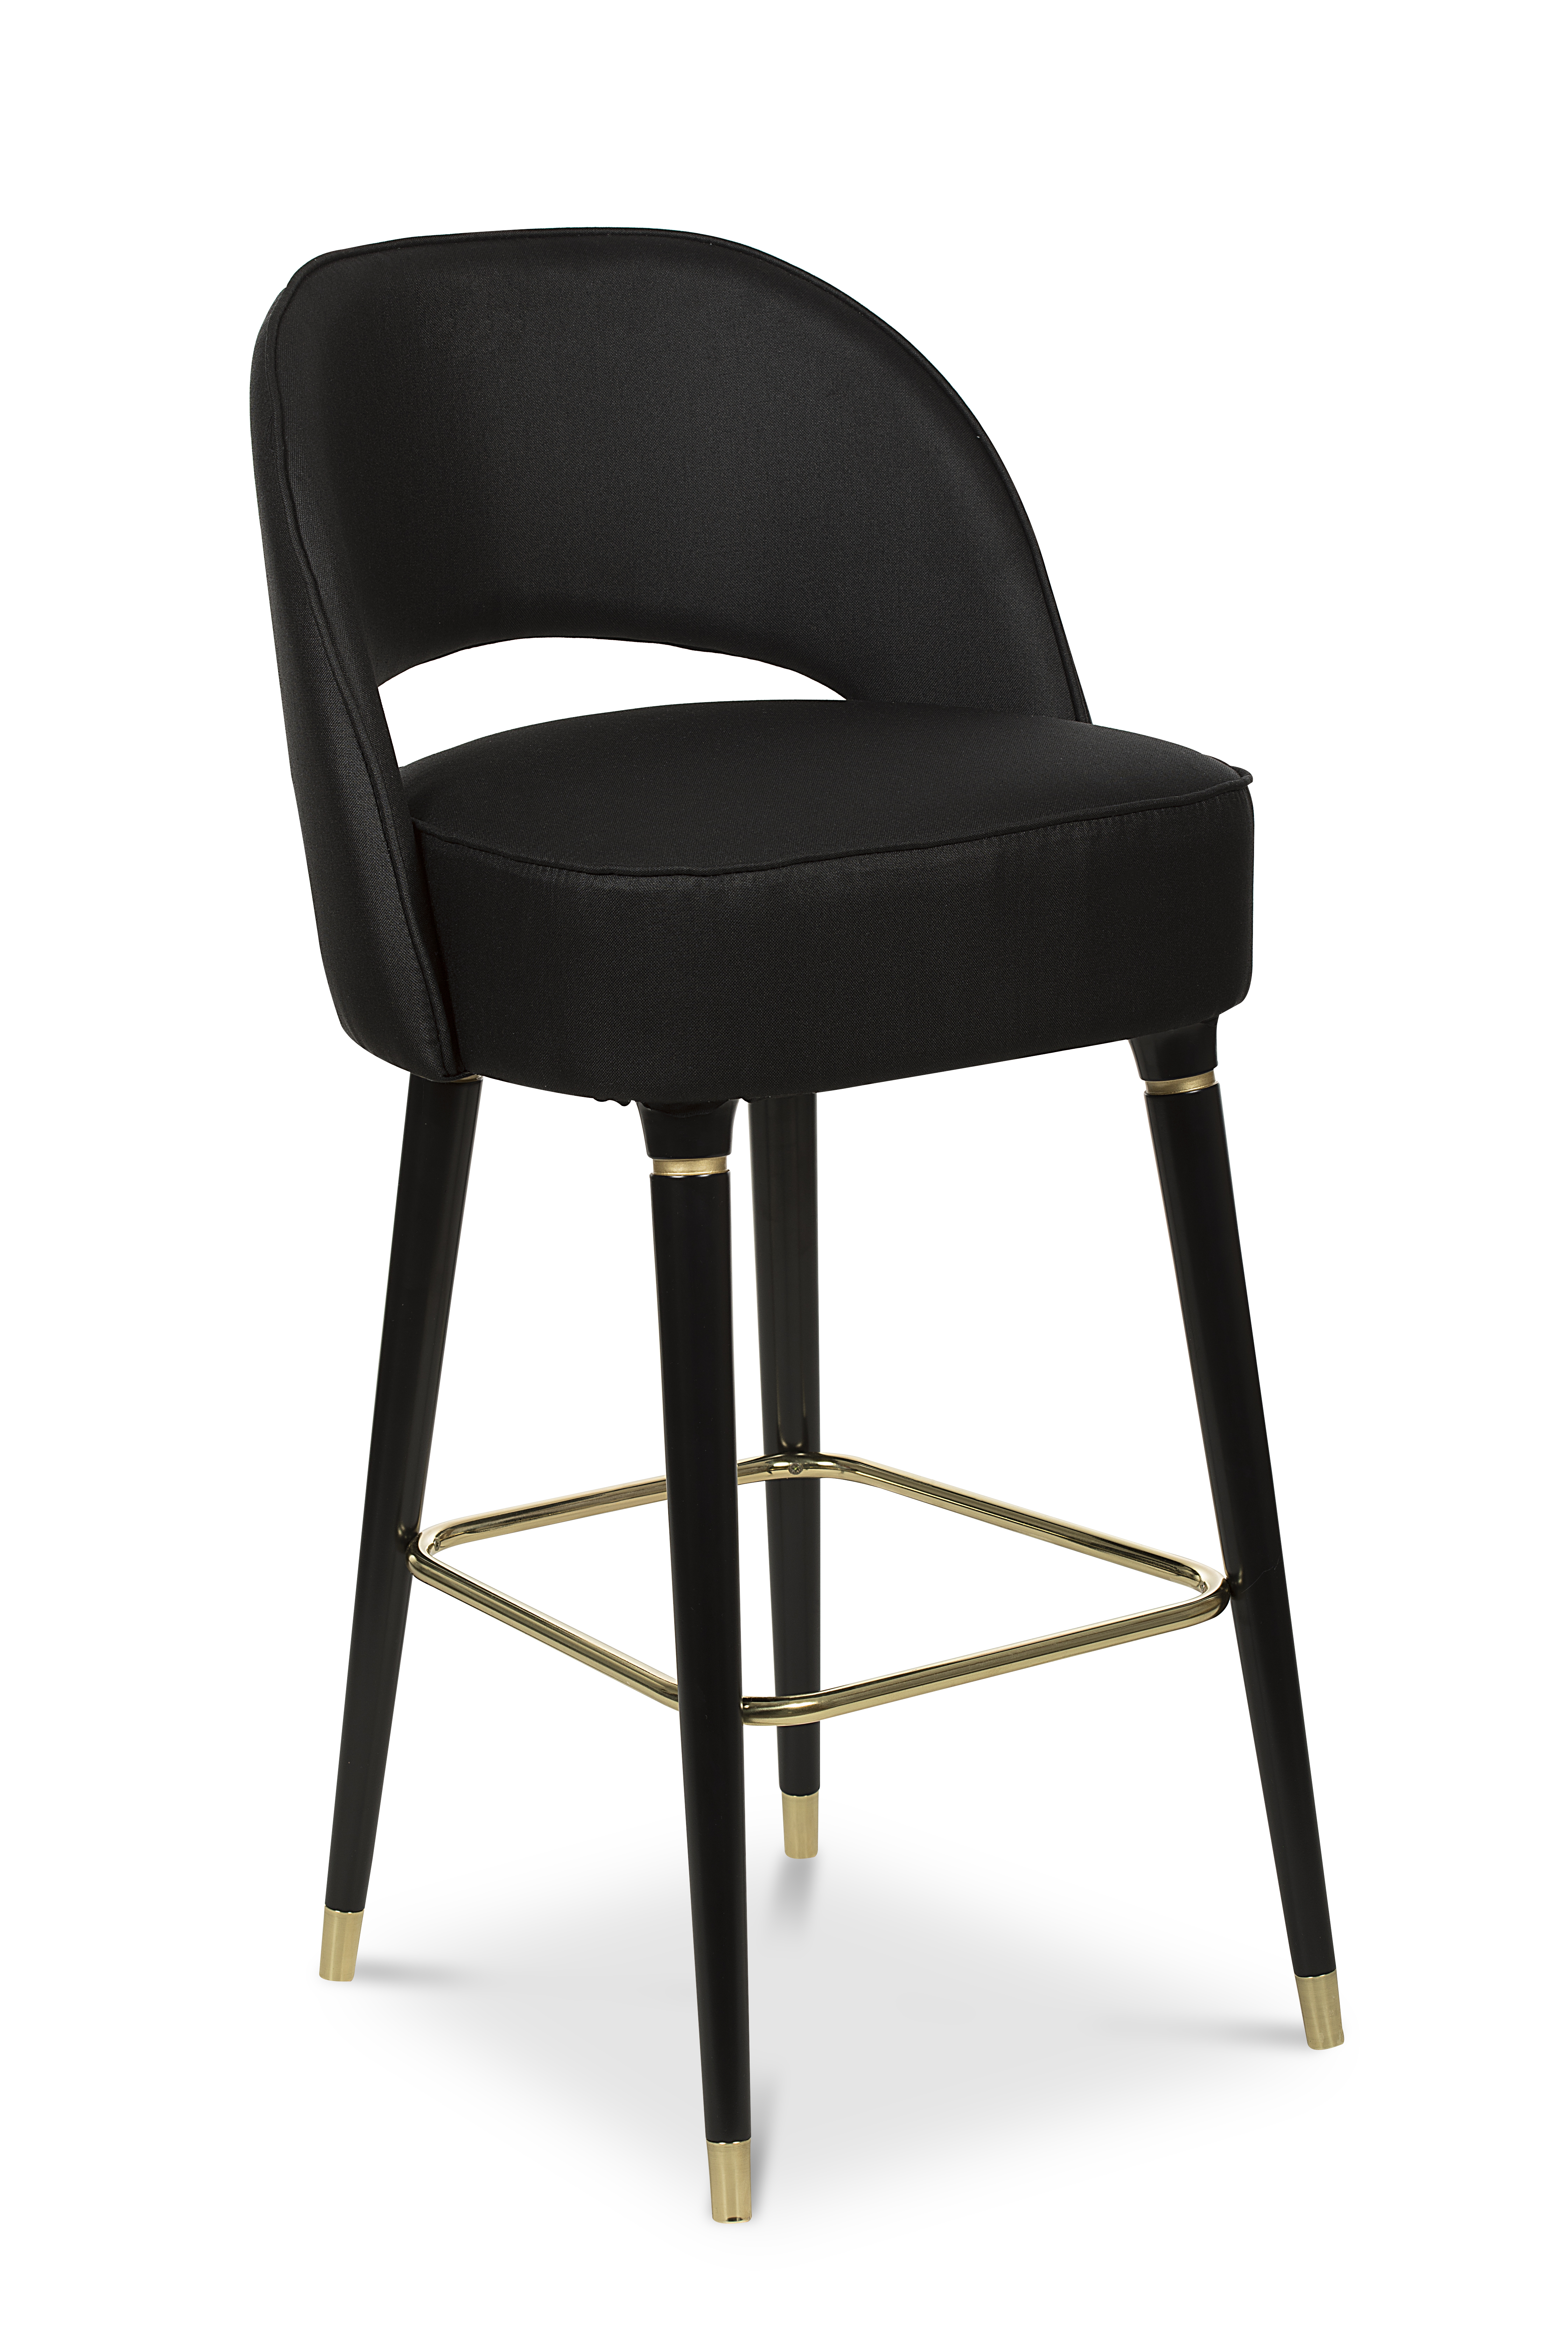 finish bar gloss index boss black stools store stool